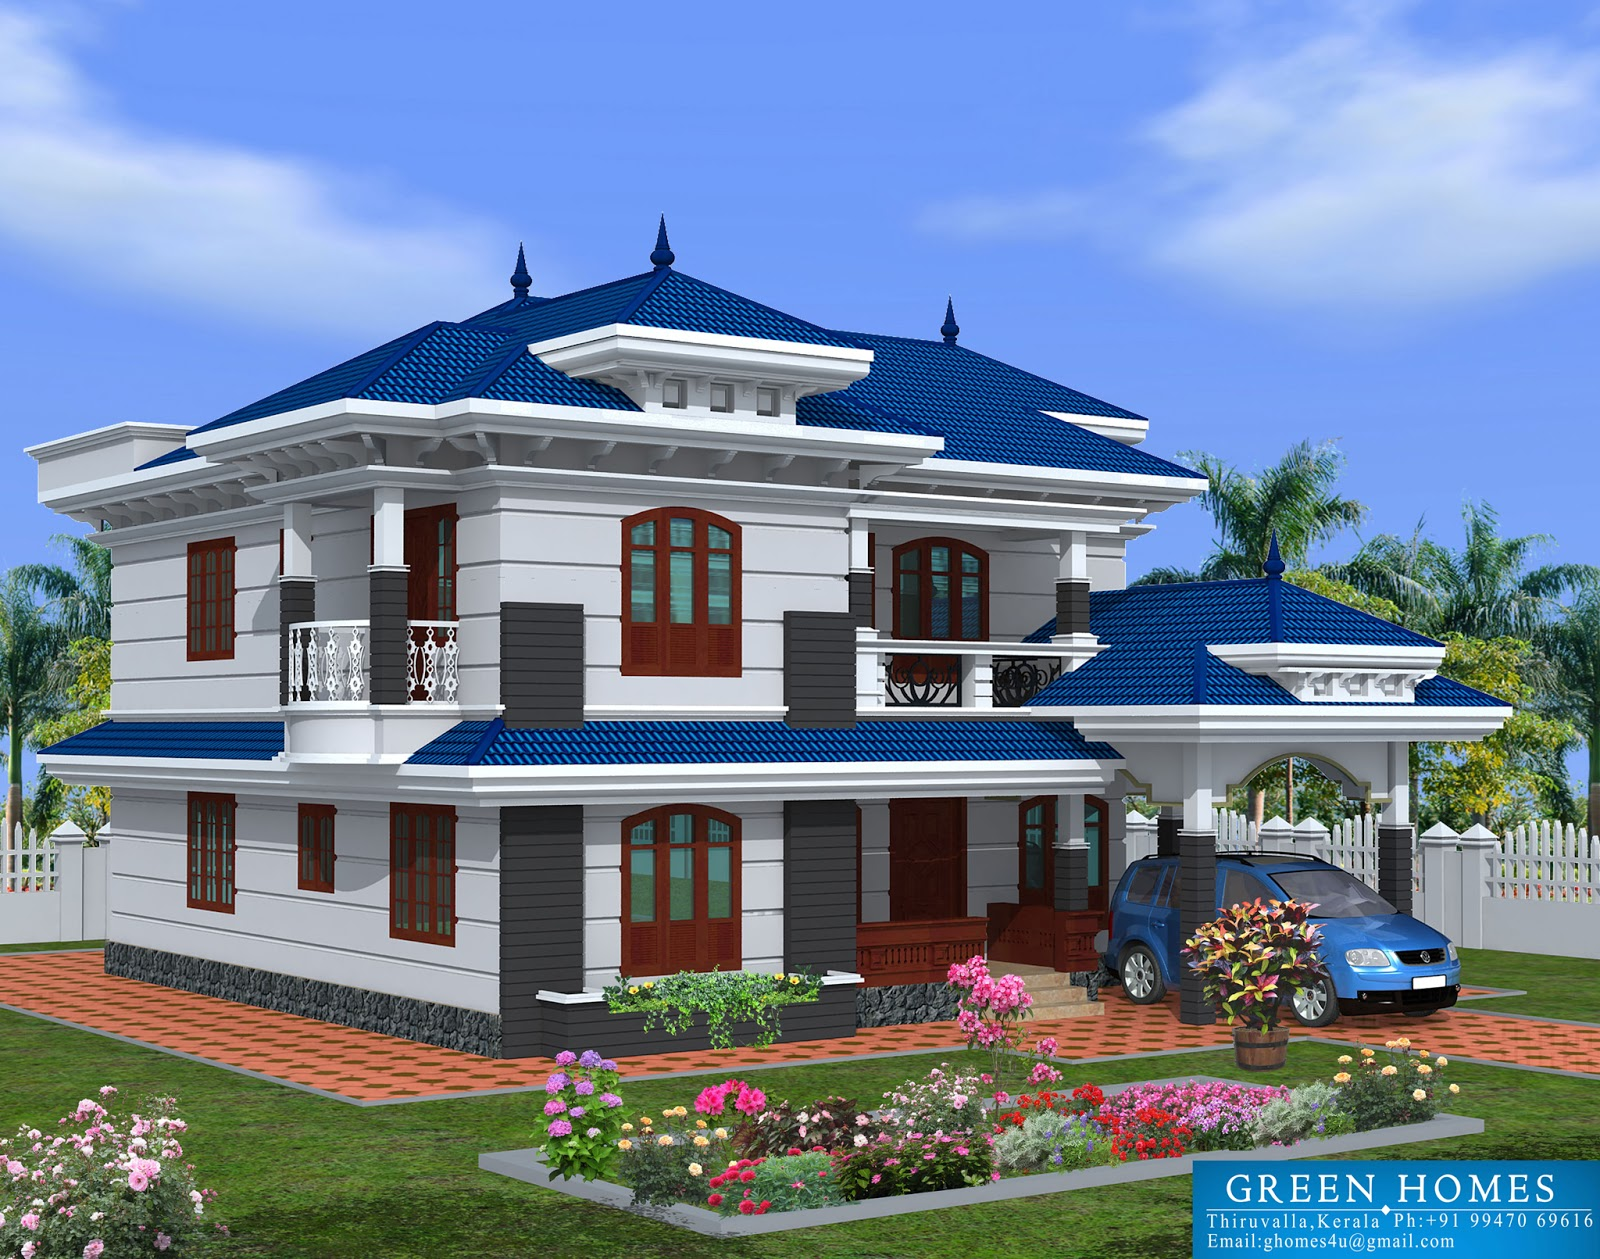 Green homes beautiful kerala home design for Design this house